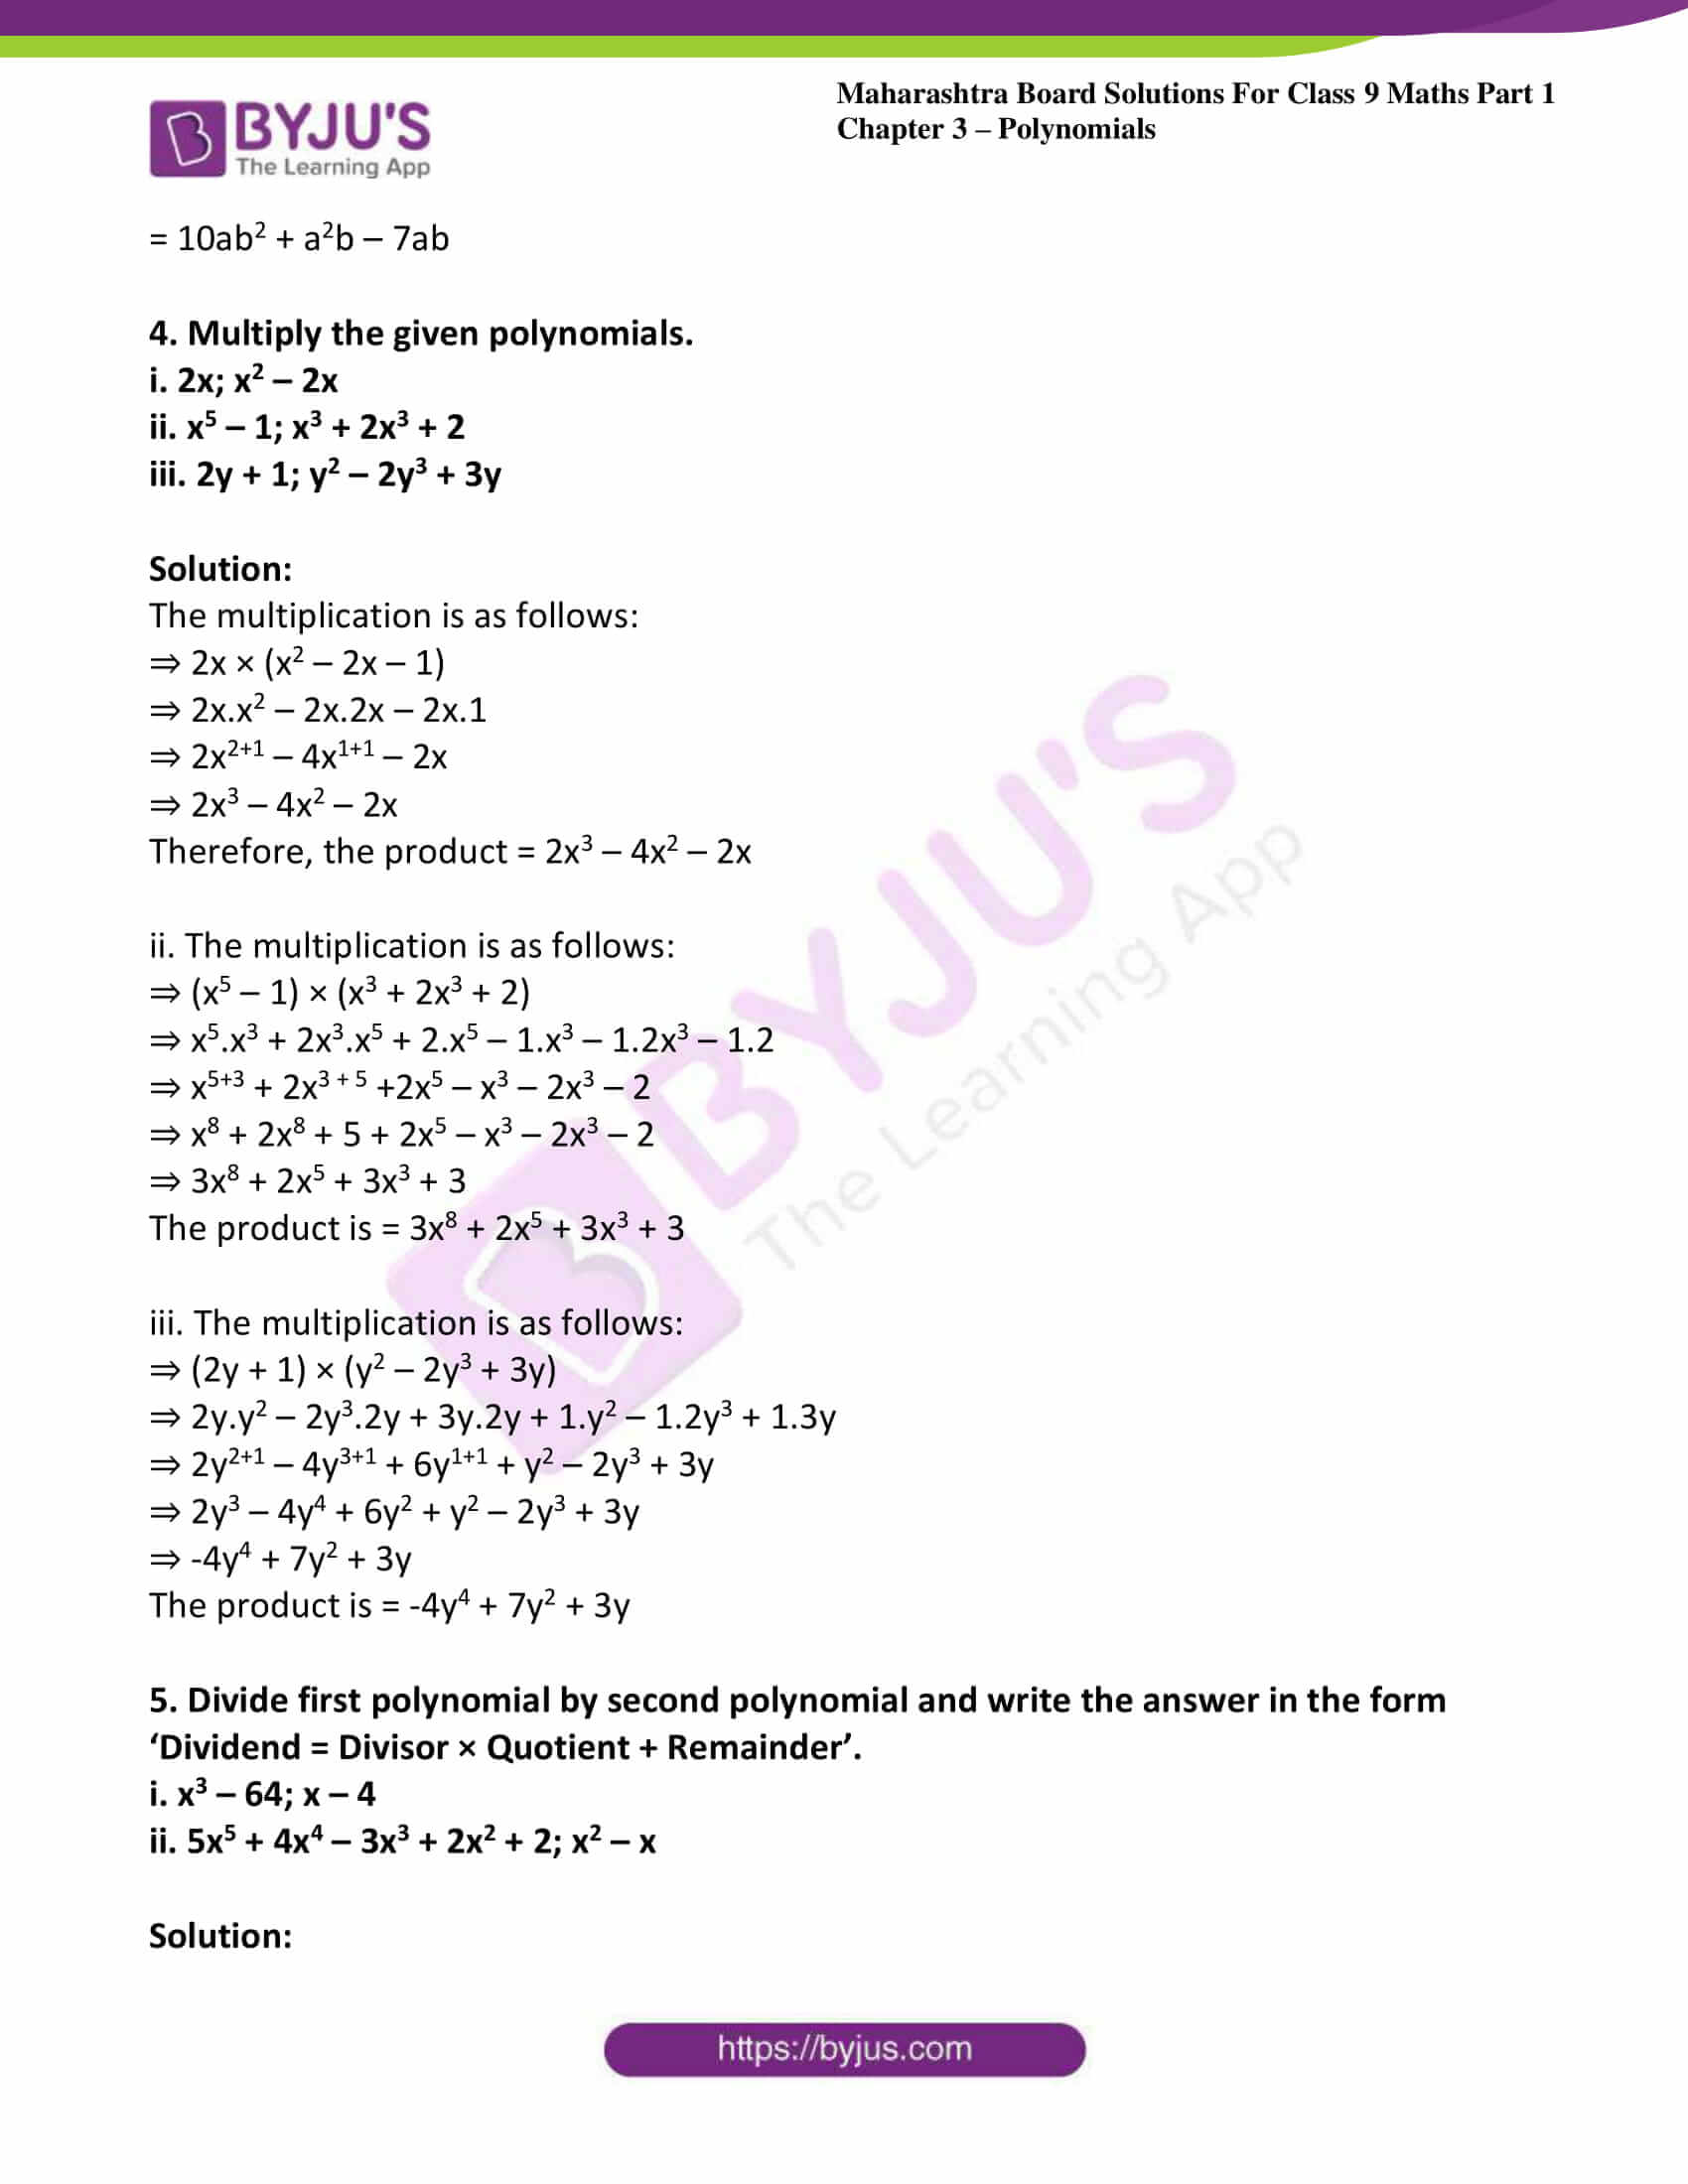 msbshse sol class 9 maths part 1 chapter 3 polynomials 10